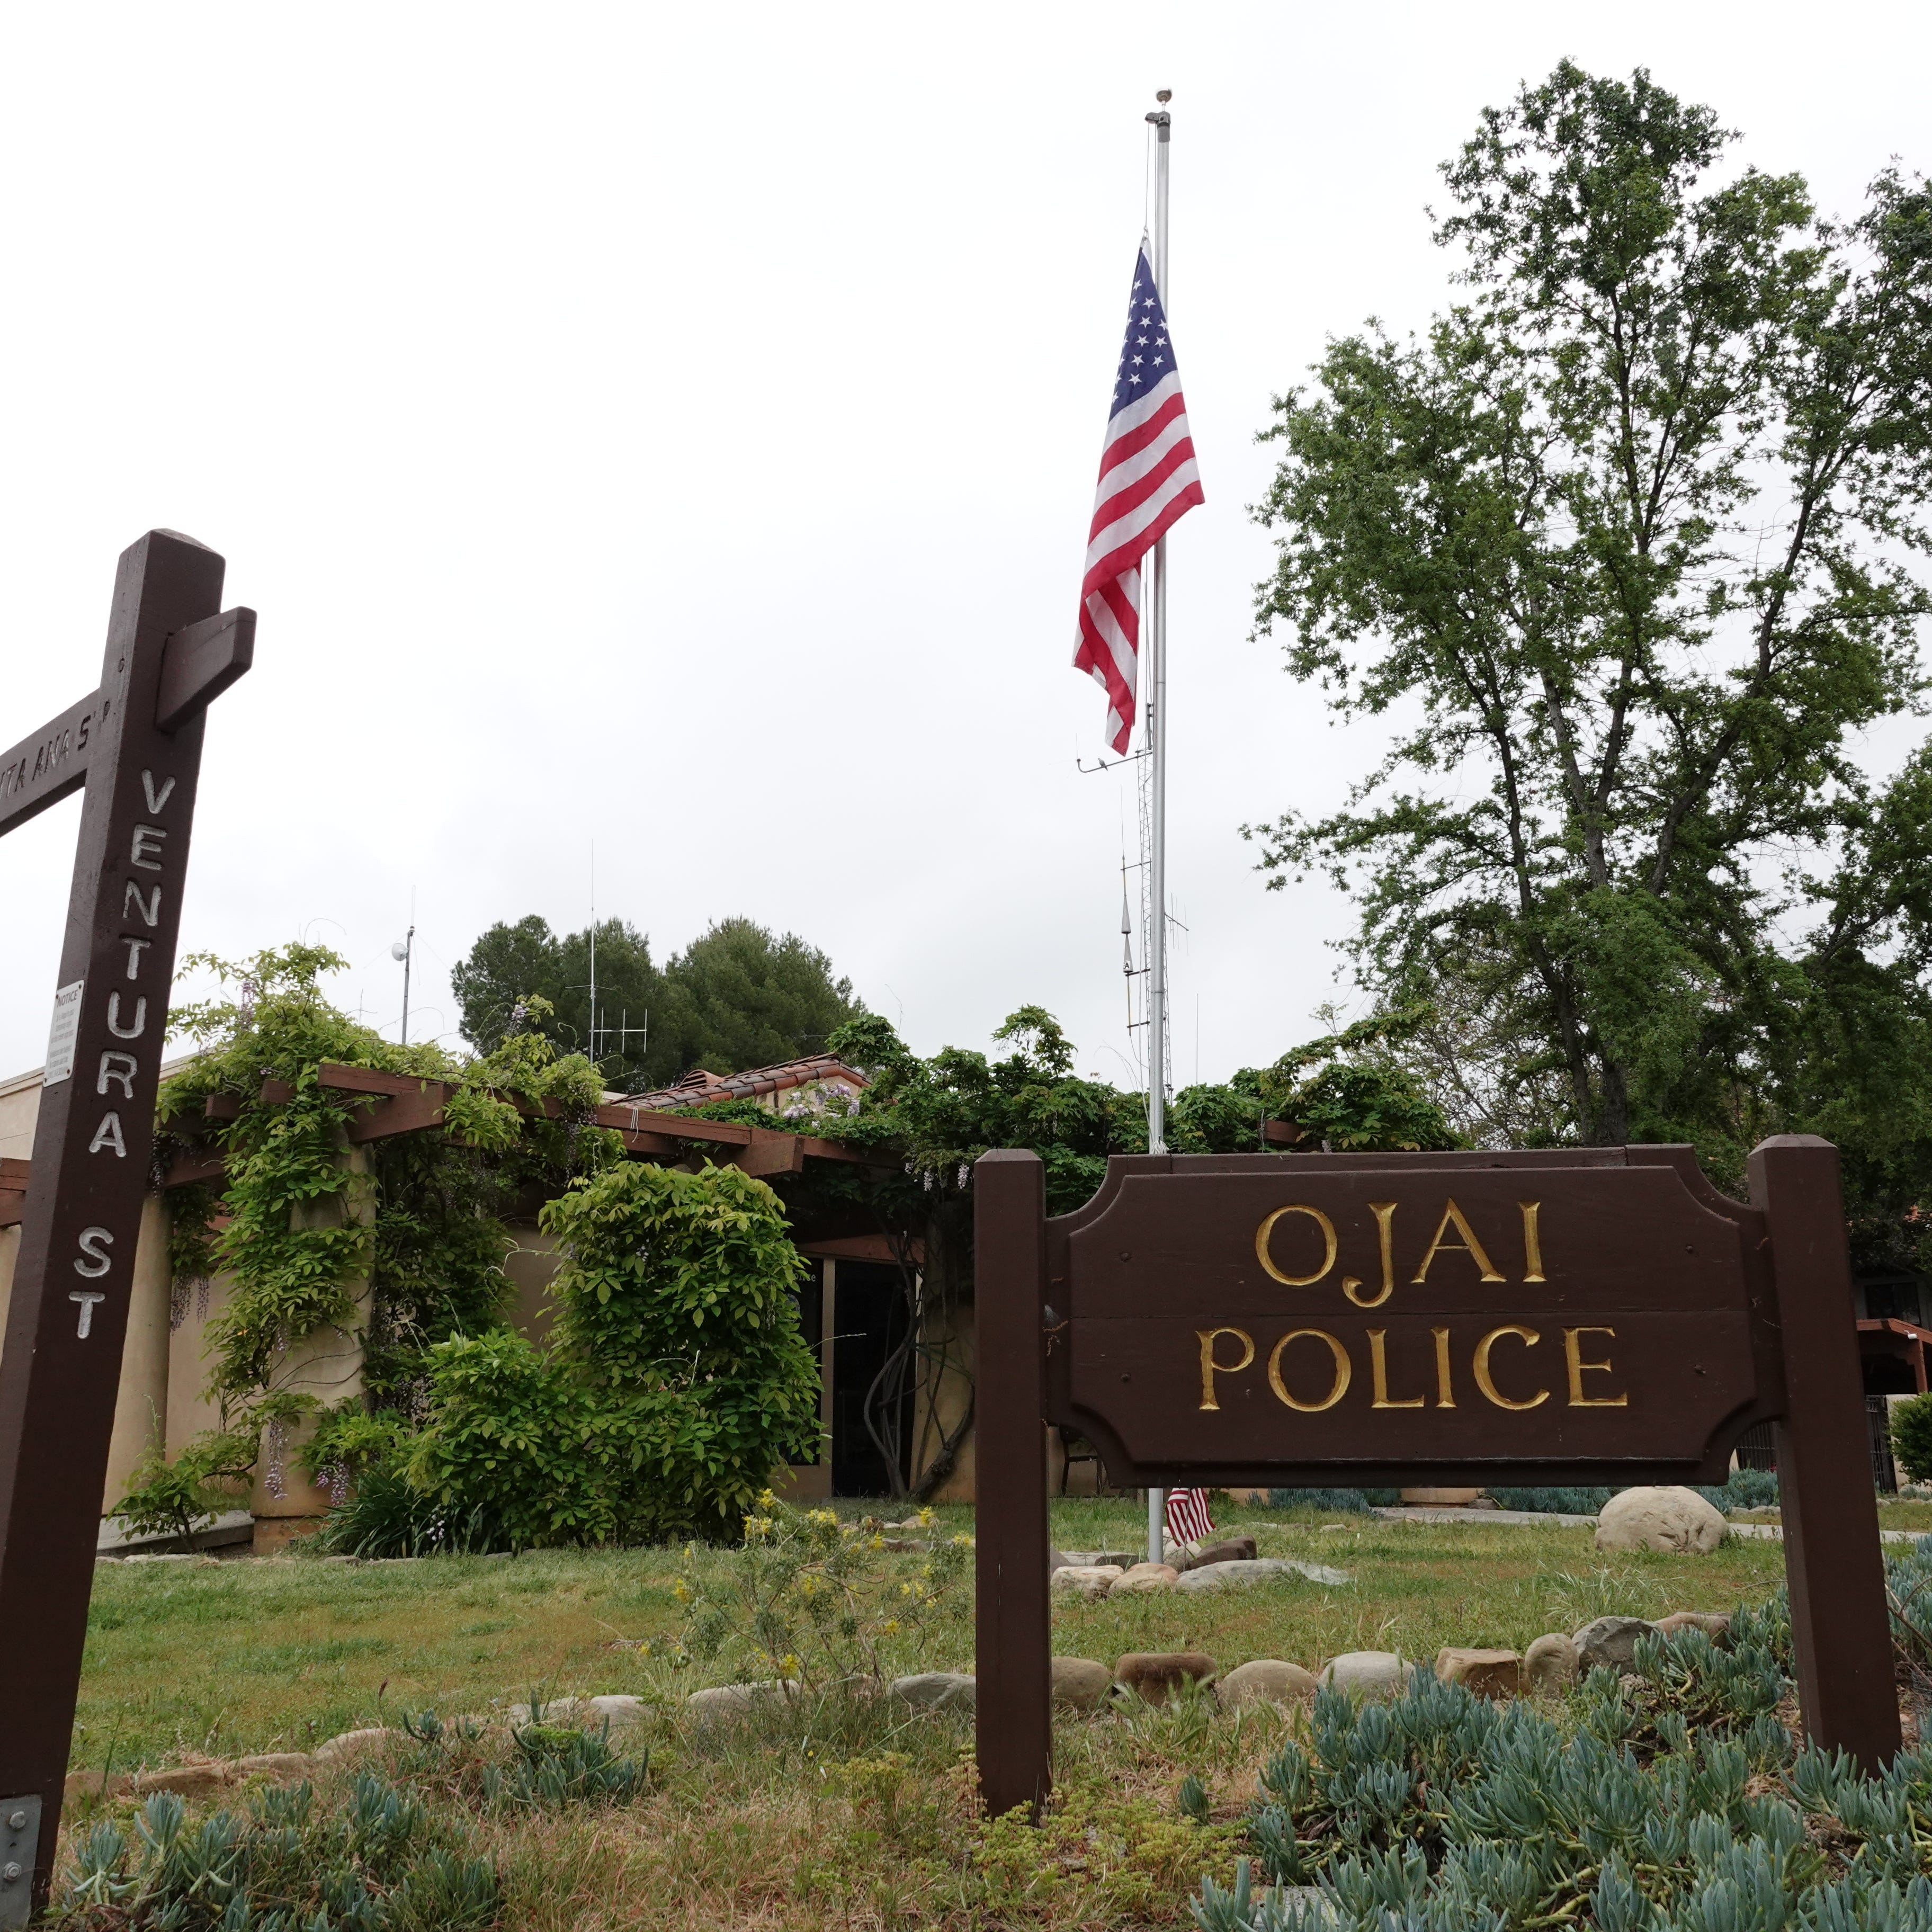 Pedestrian killed by vehicle in Ojai